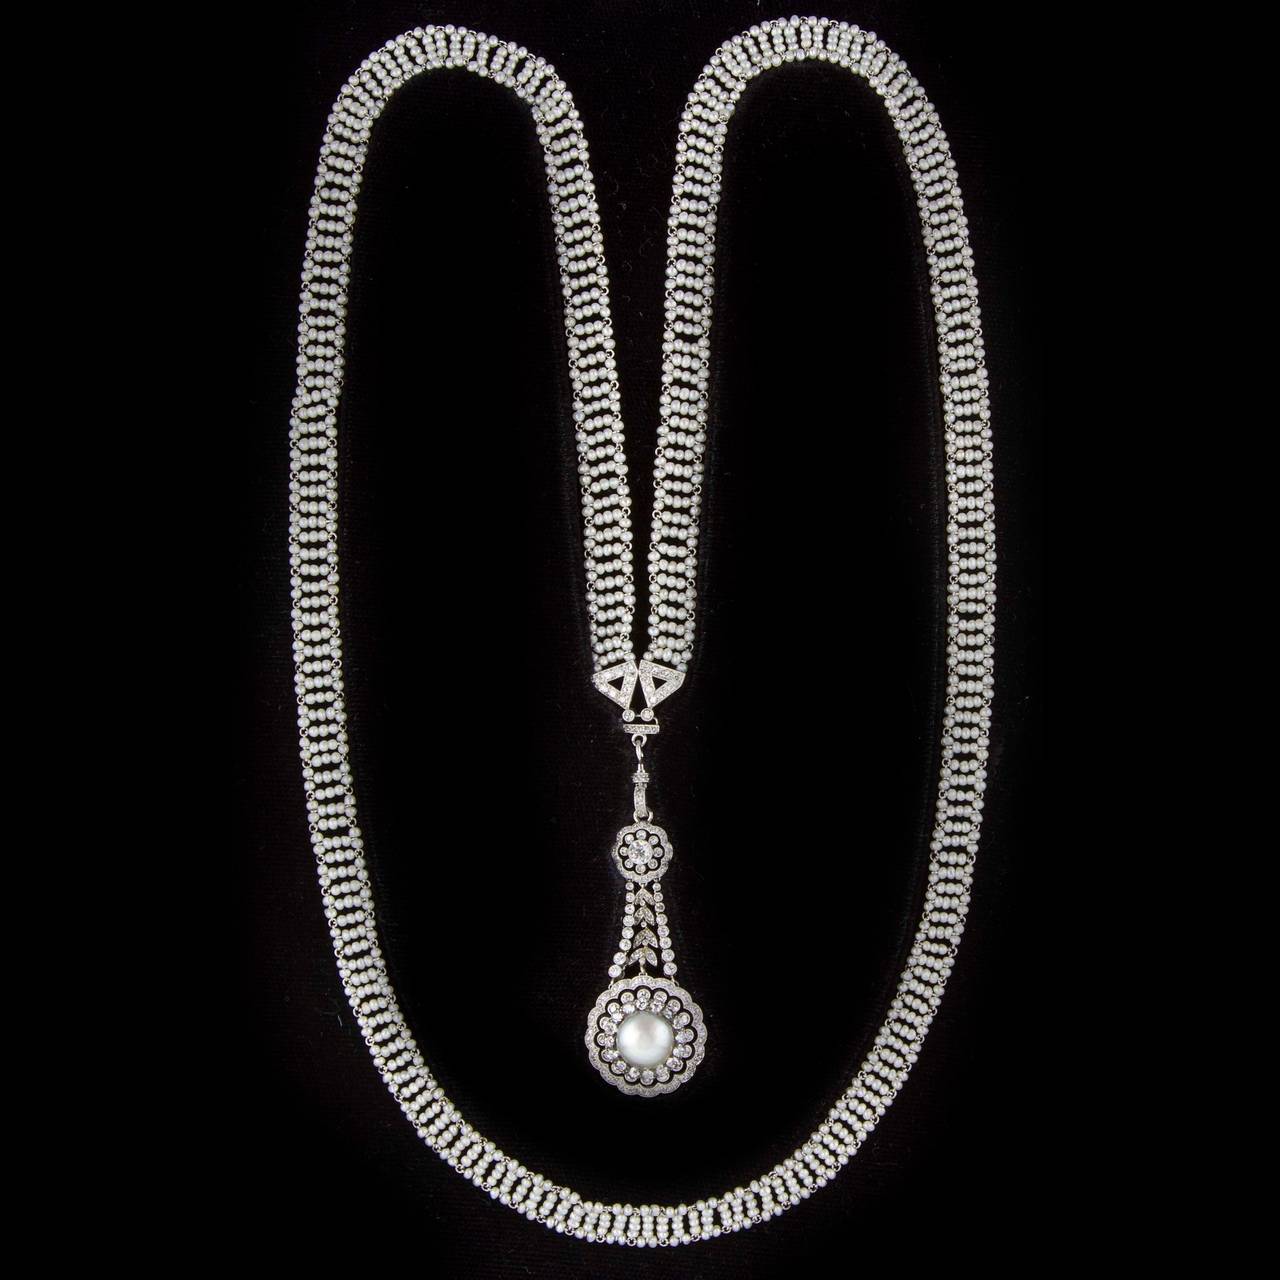 A Belle-Epoque pearl and diamond sautoir, the sautoir comprising a long mesh chain of natural seed pearls with V-shaped diamond-set terminations, suspending a pearl and diamond double cluster drop, the silver natural half pearl measuring